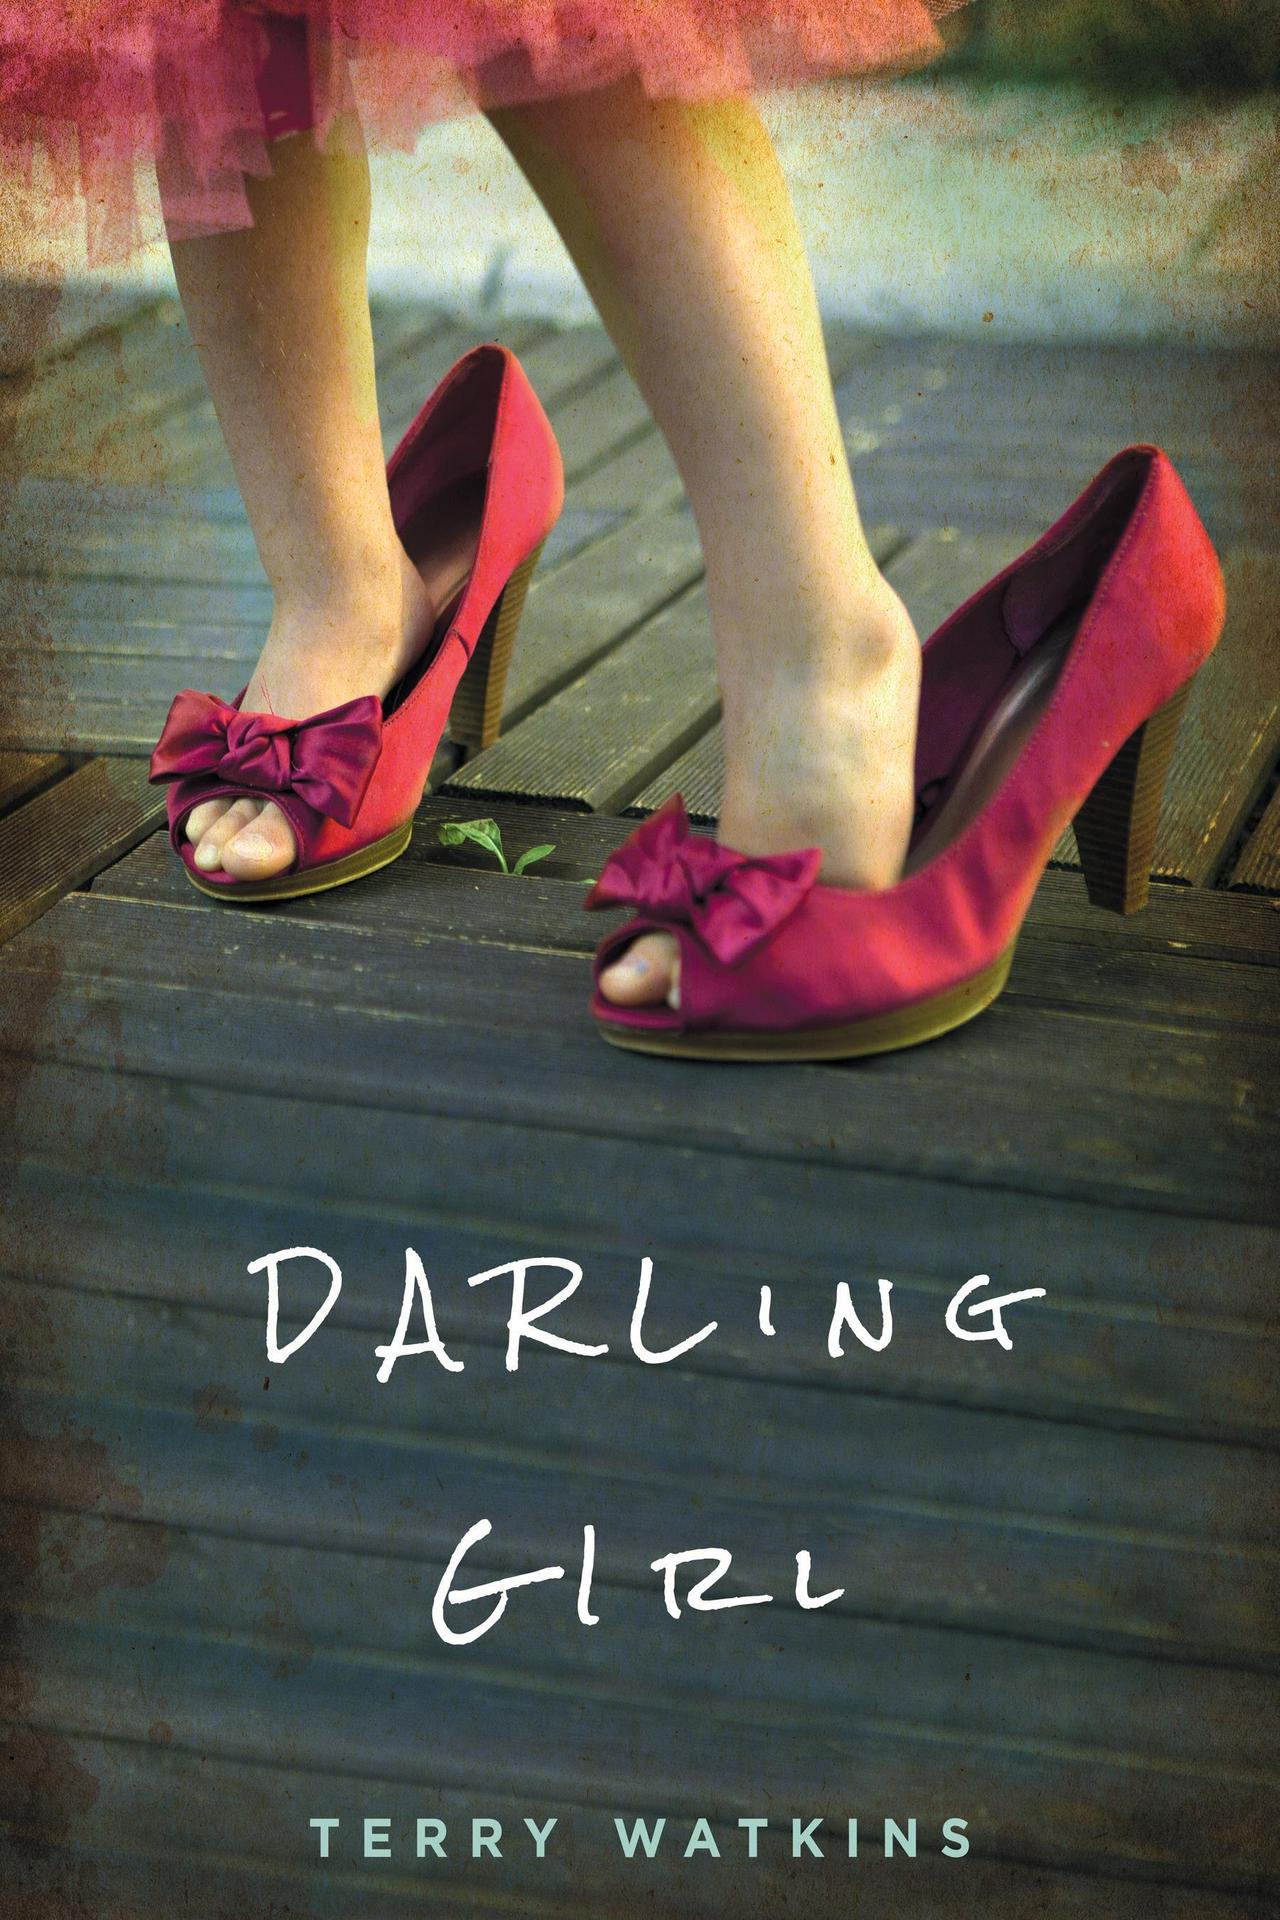 Darling girl legs best version